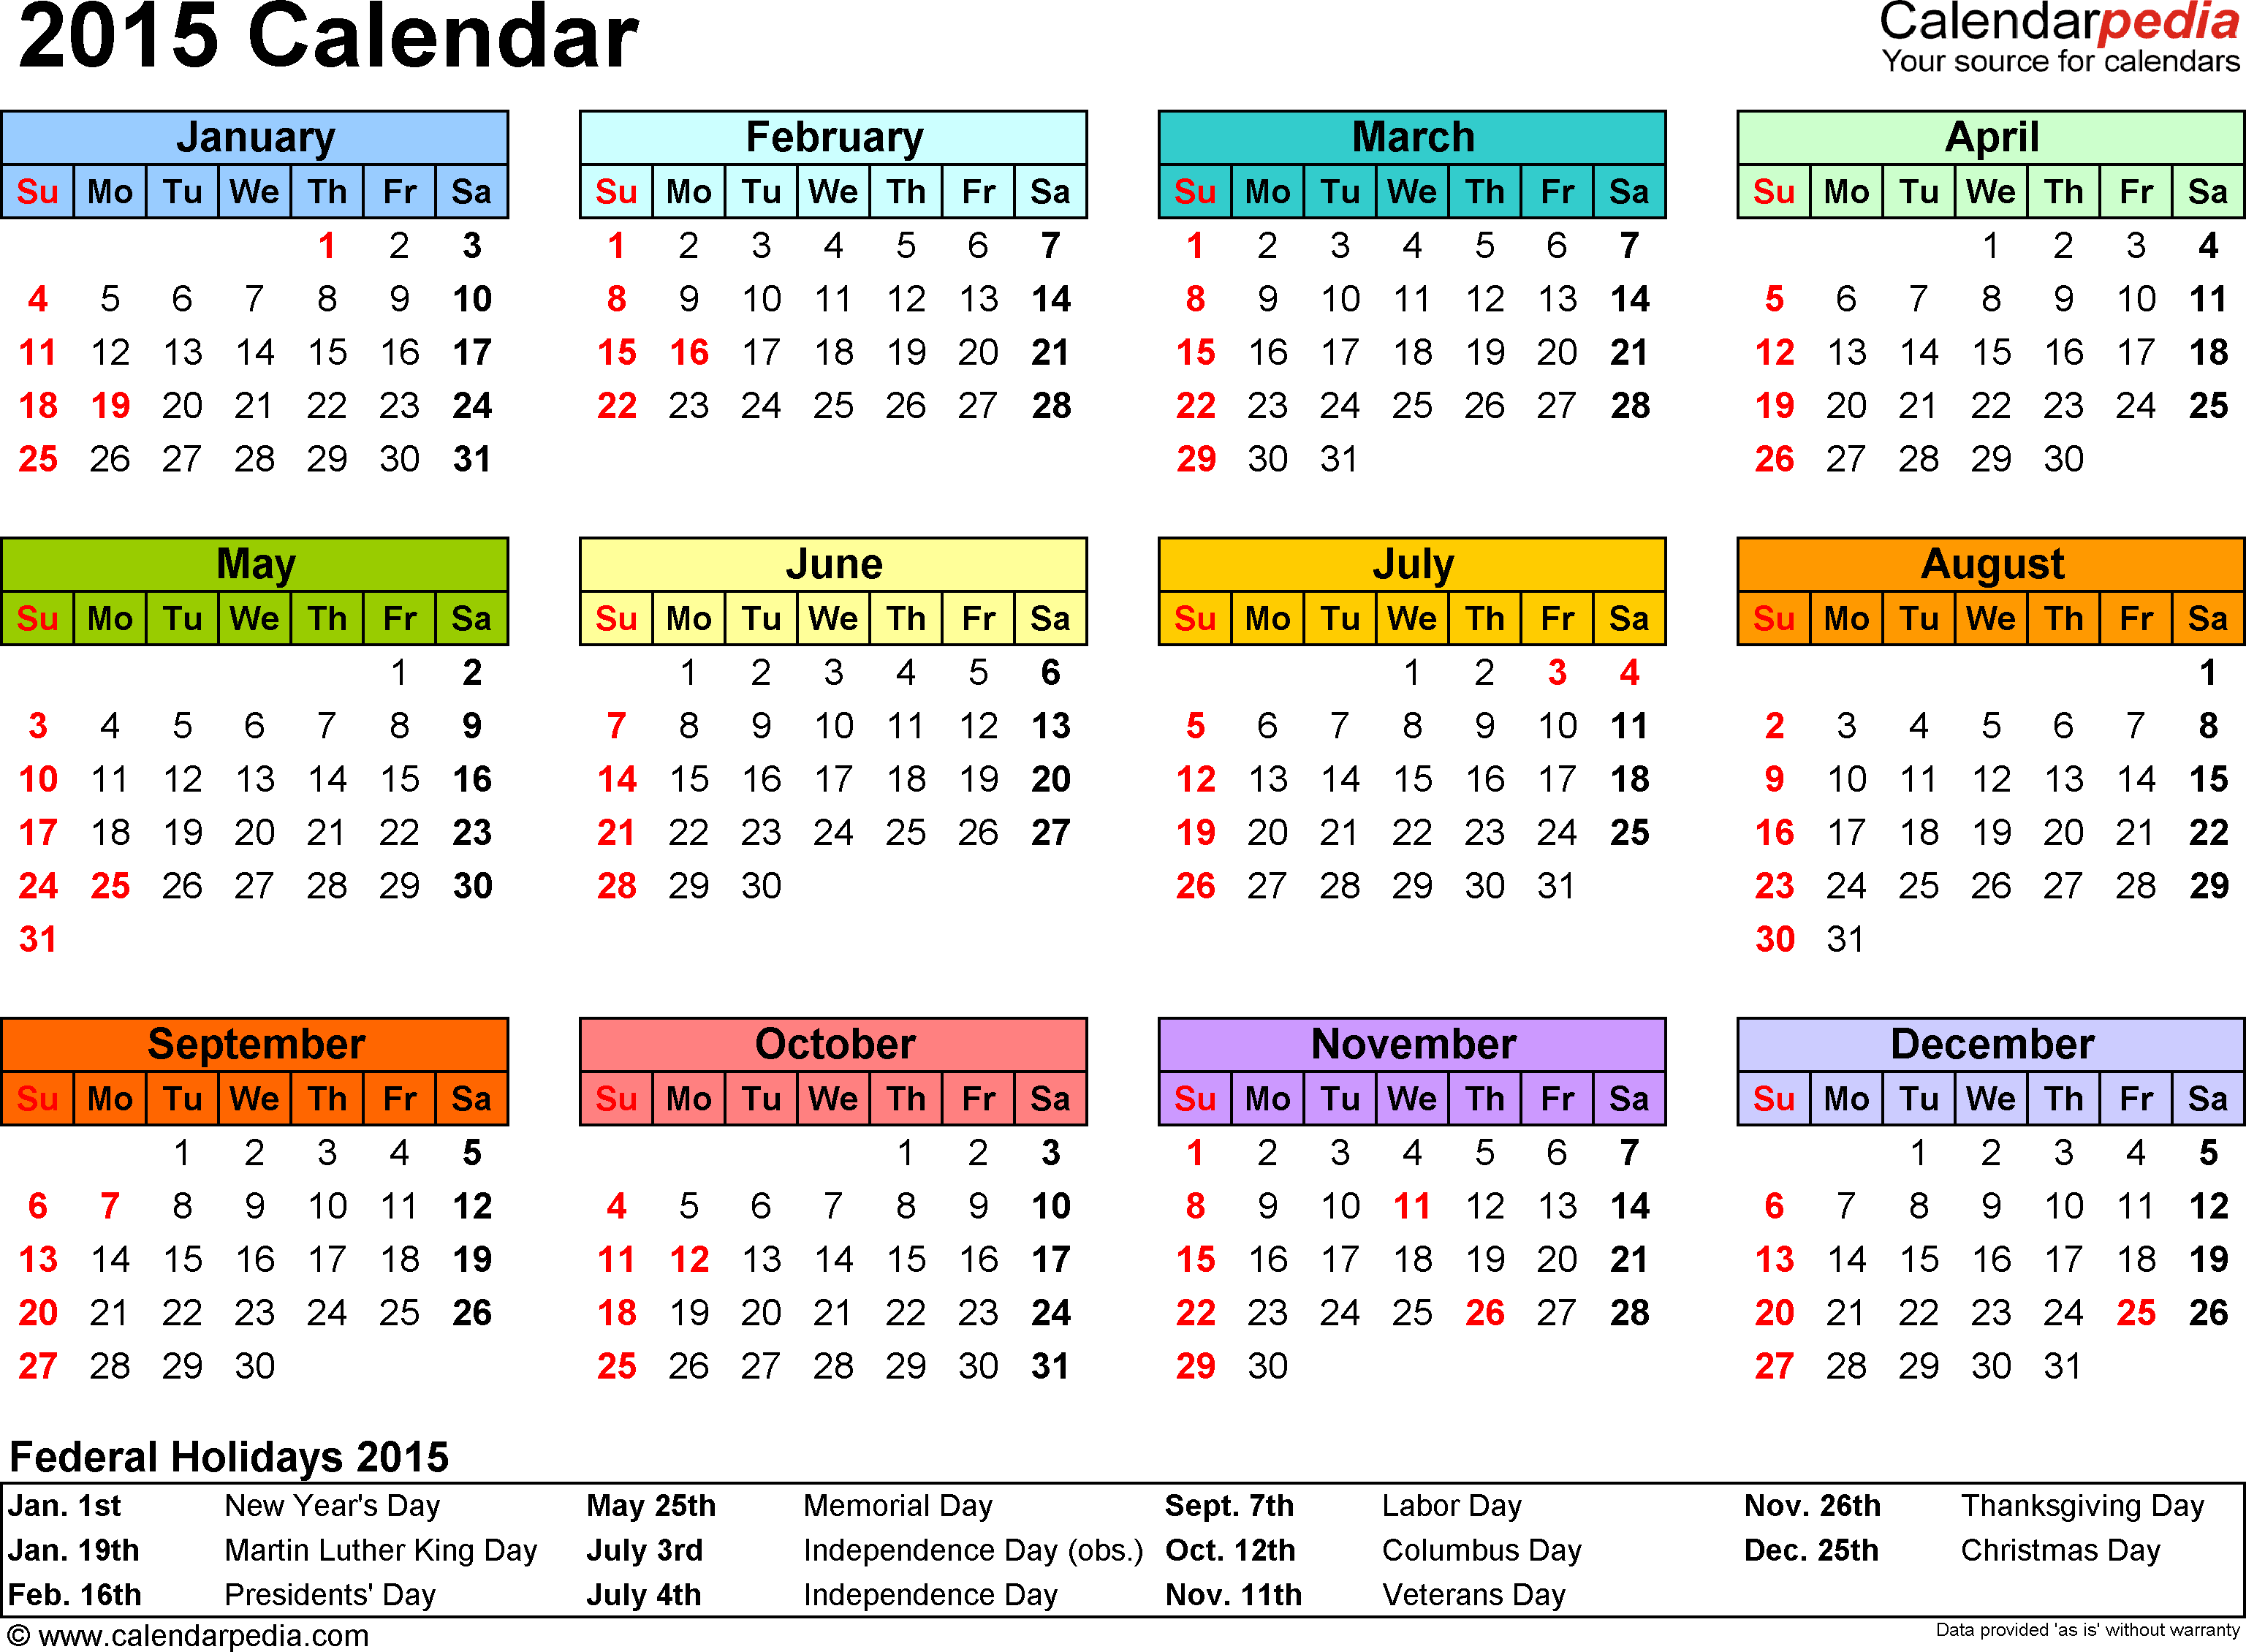 Template 7: 2015 Calendar for Word, year at a glance, 1 page, in color